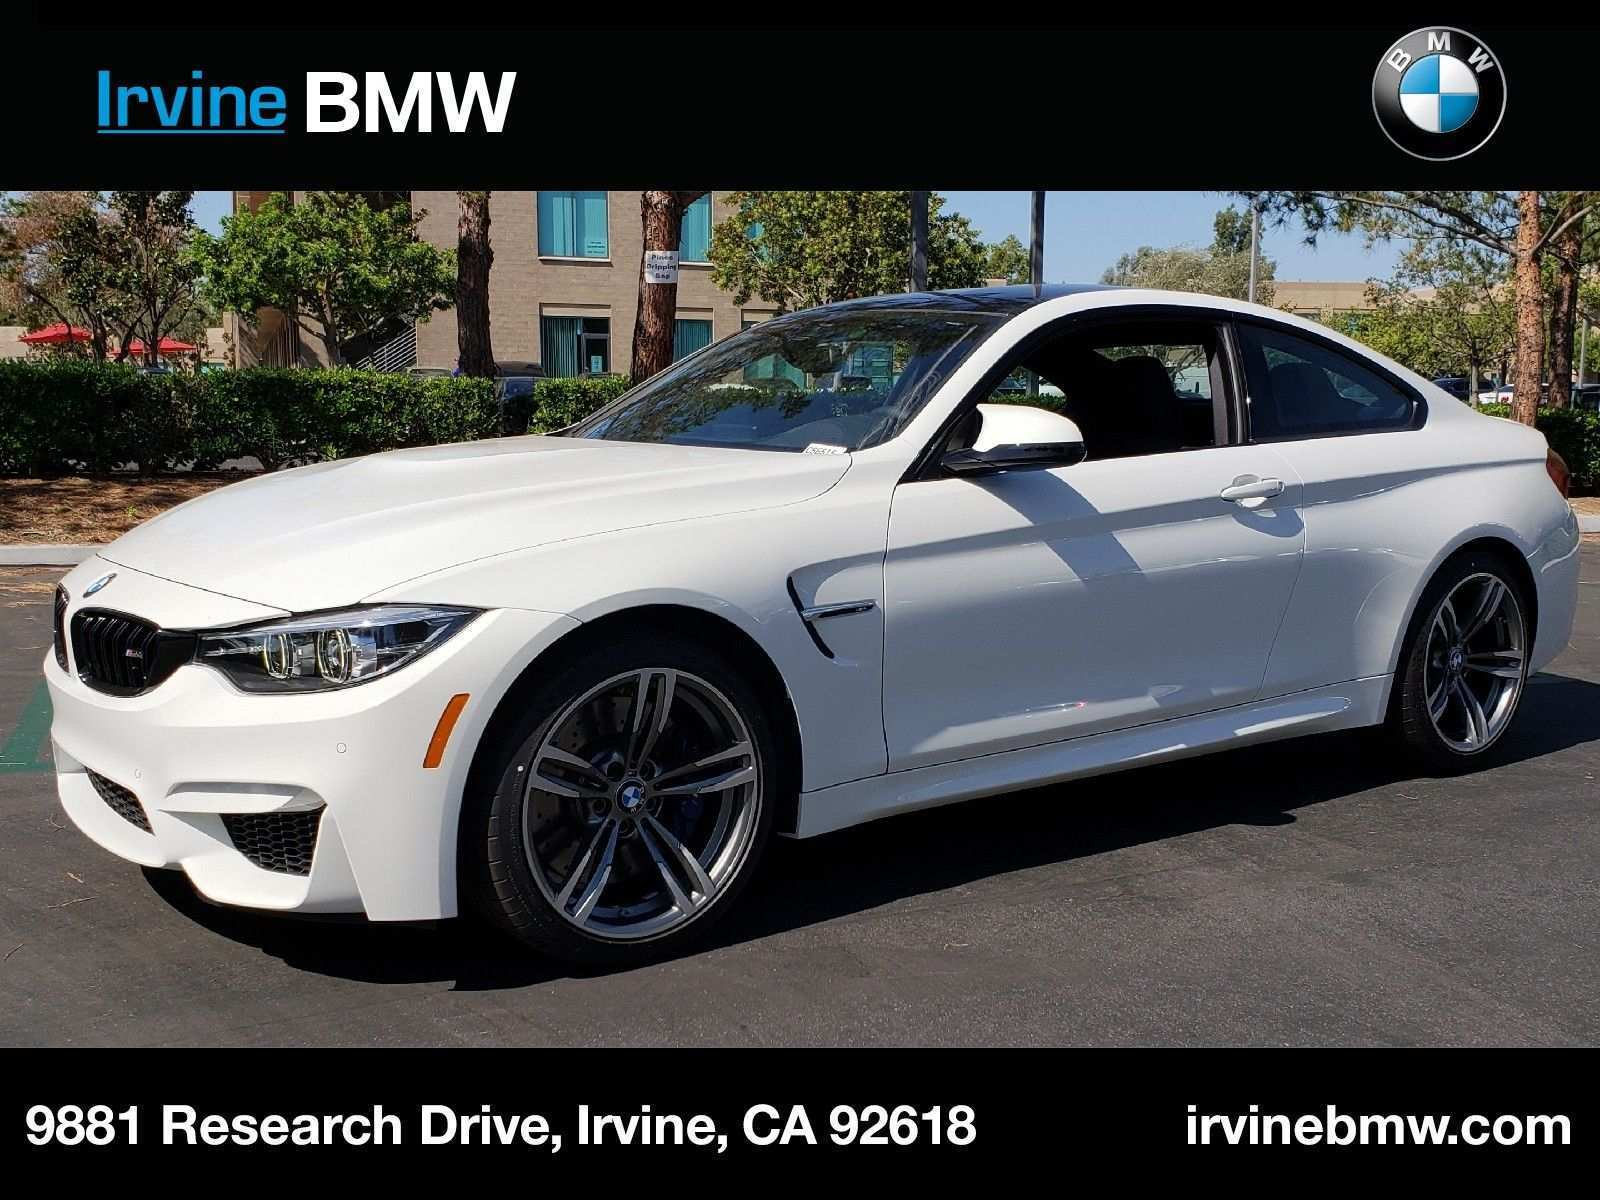 63 Great 2019 Bmw 5500 Hd Price and Review for 2019 Bmw 5500 Hd